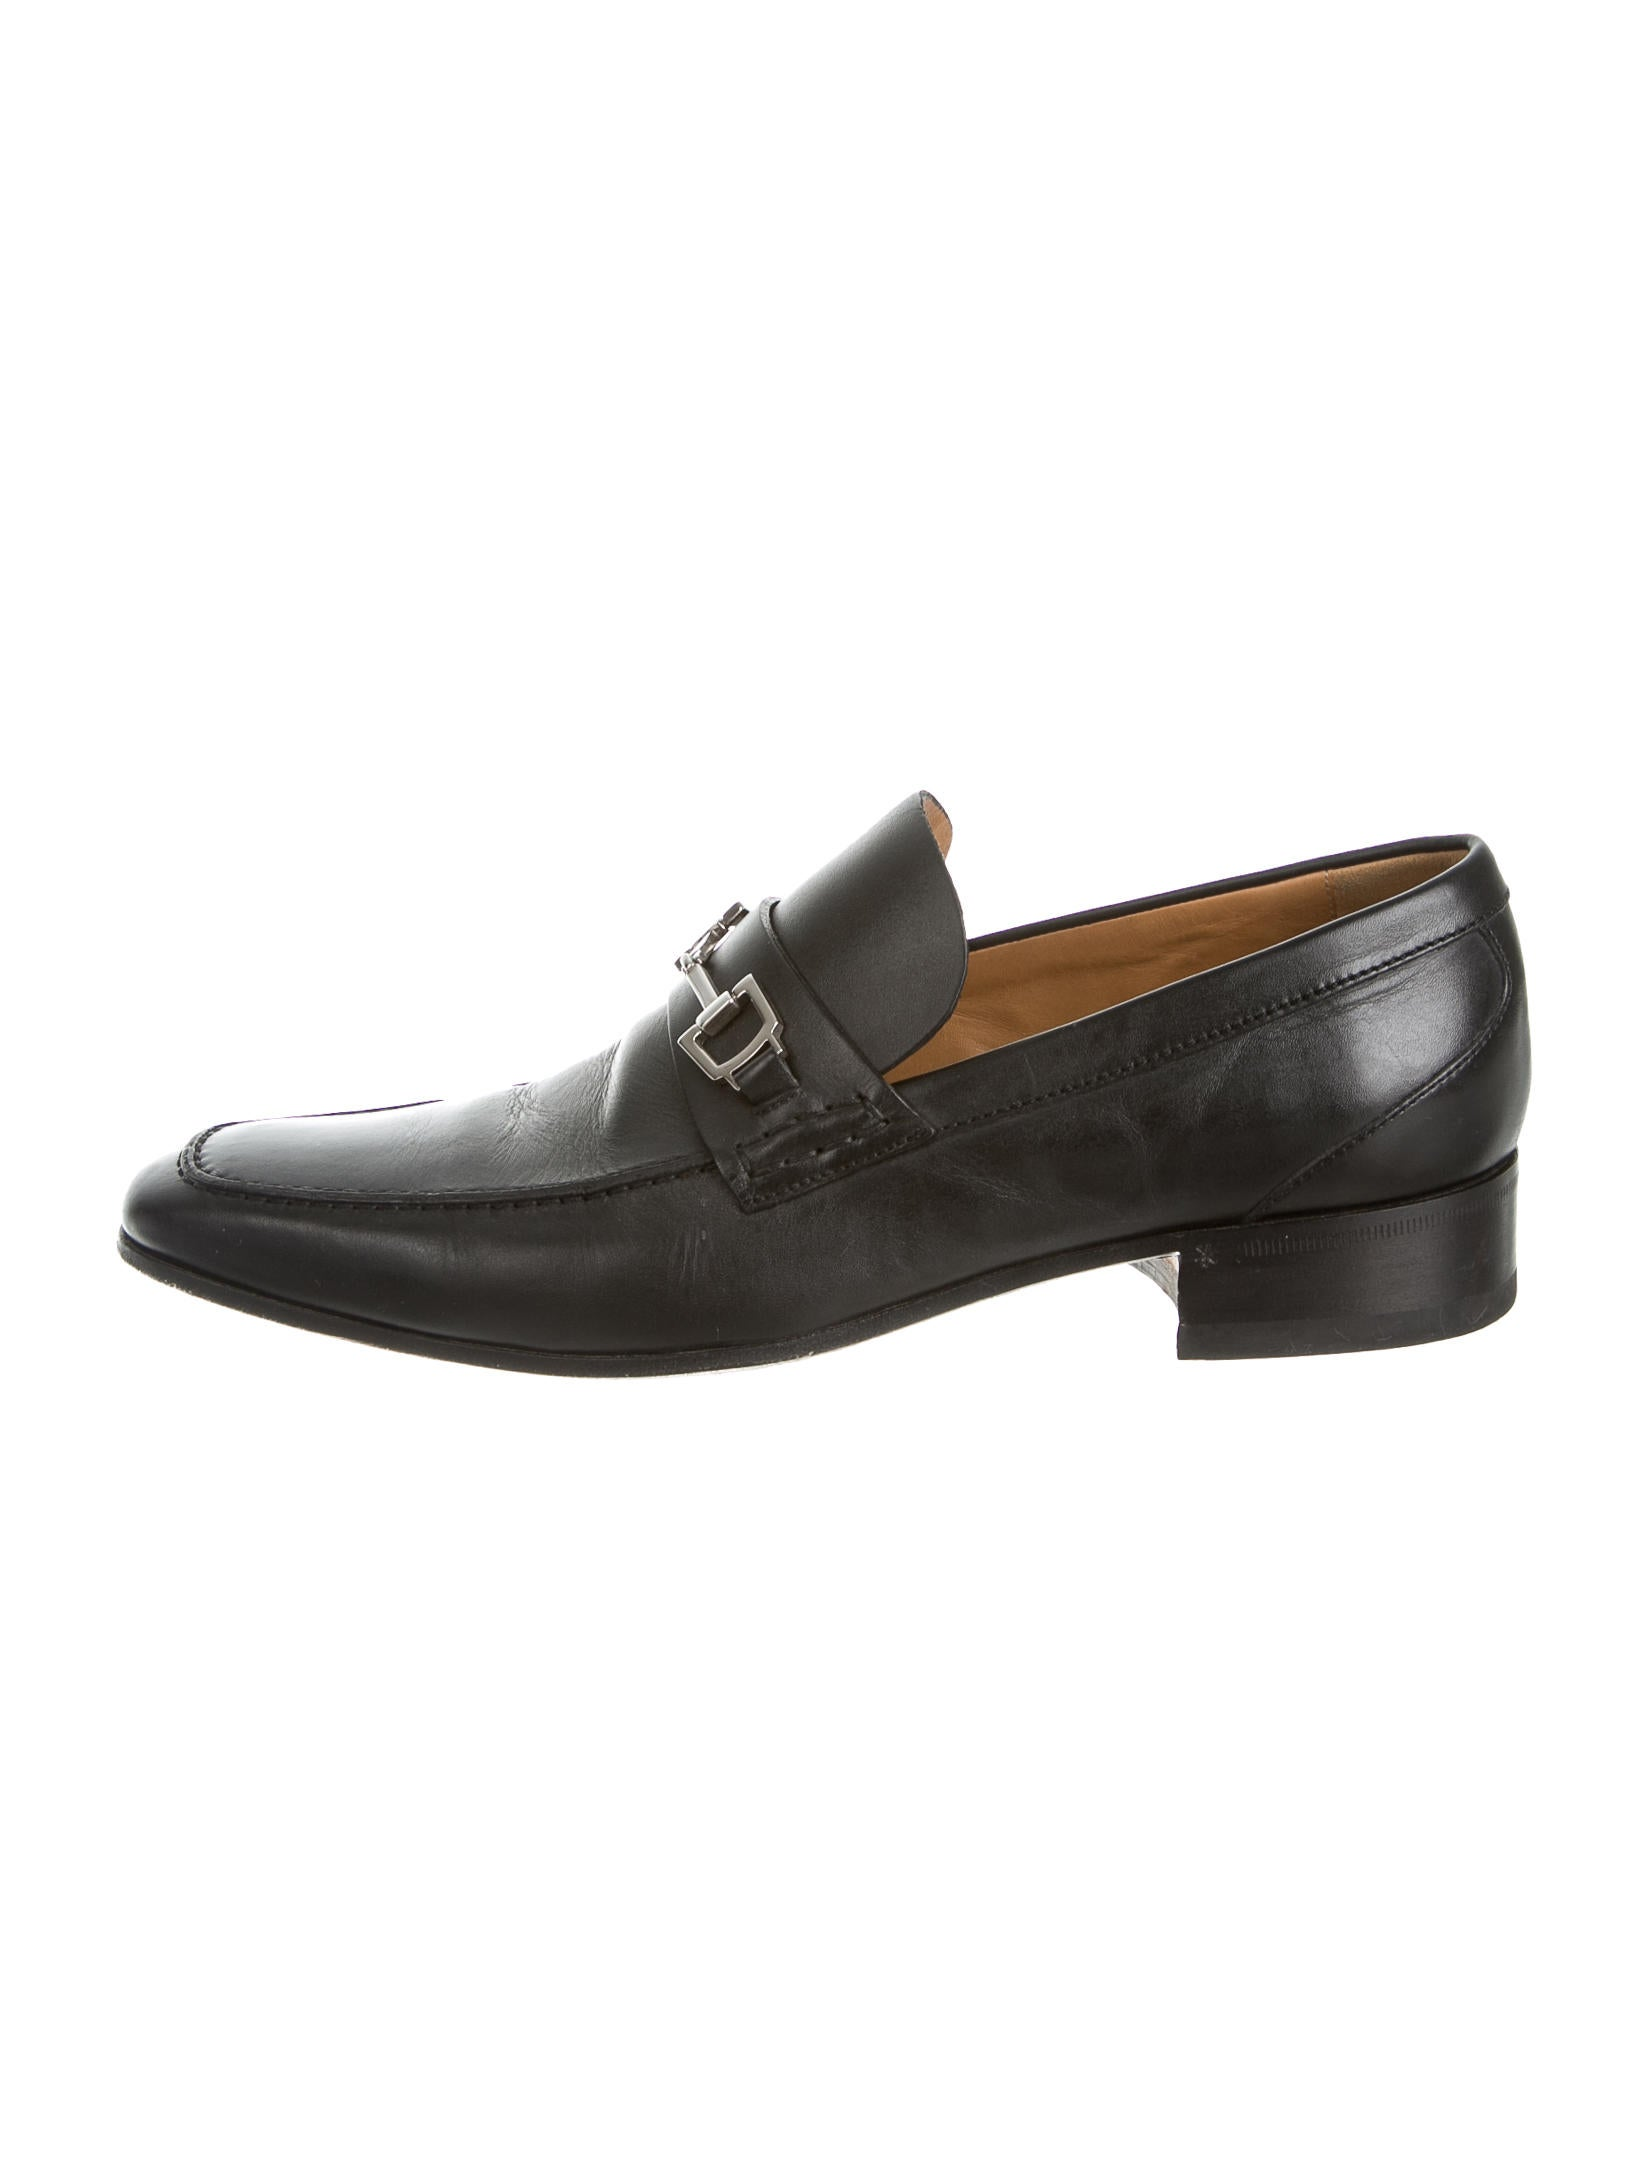 Gucci Loafers - Mens Shoes - GUC65973 | The RealReal